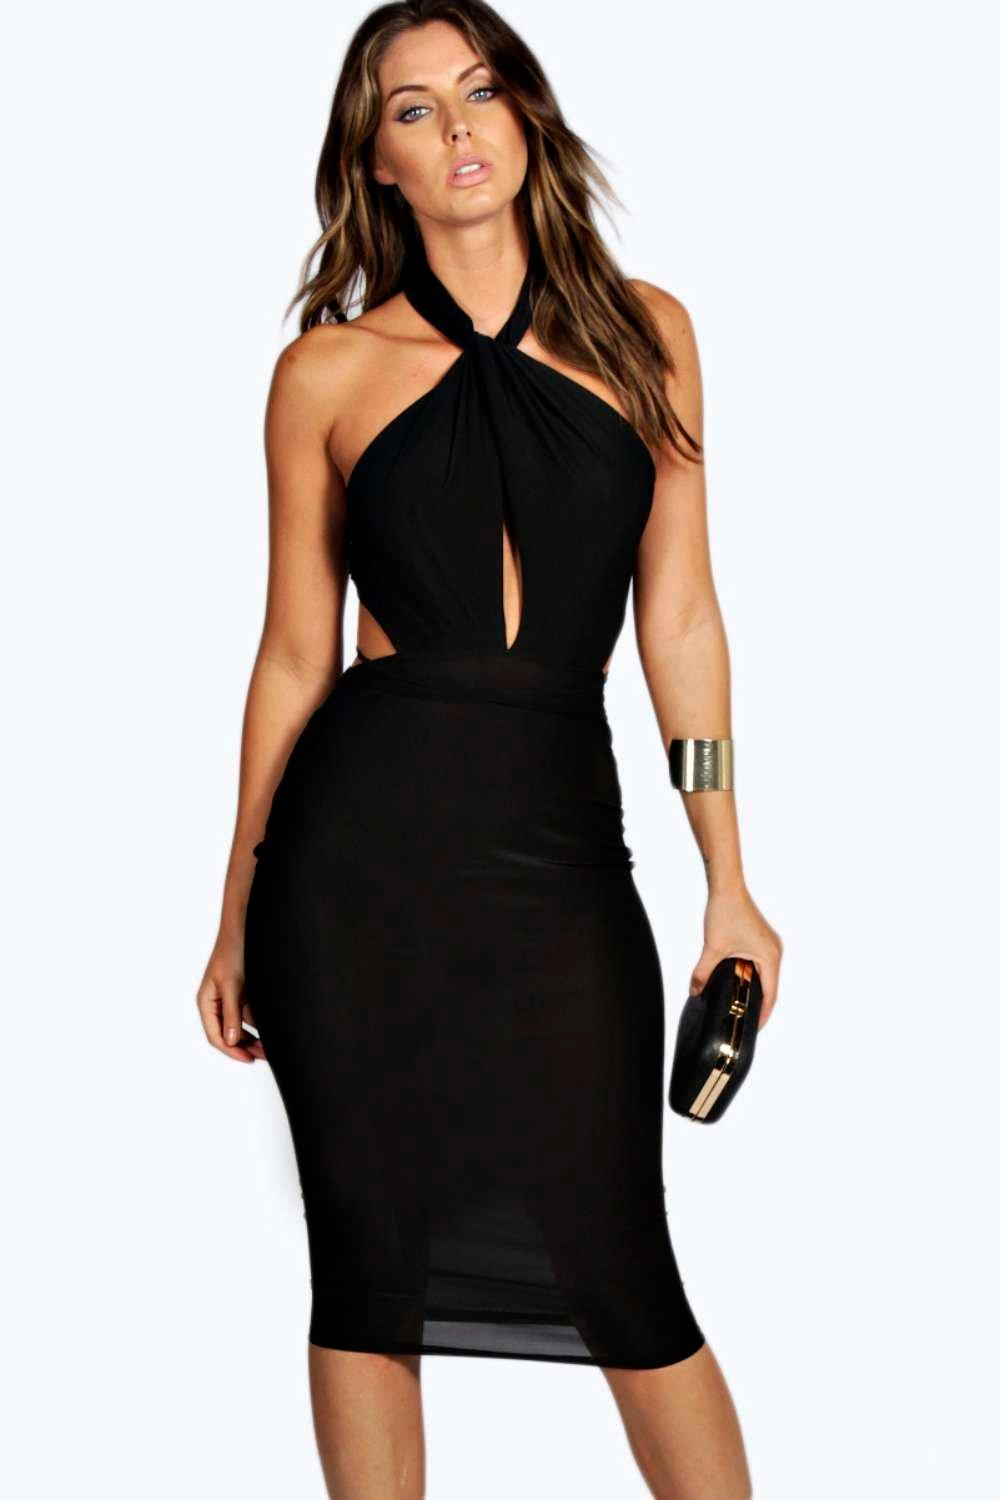 Black dress bodycon - Hover To Zoom